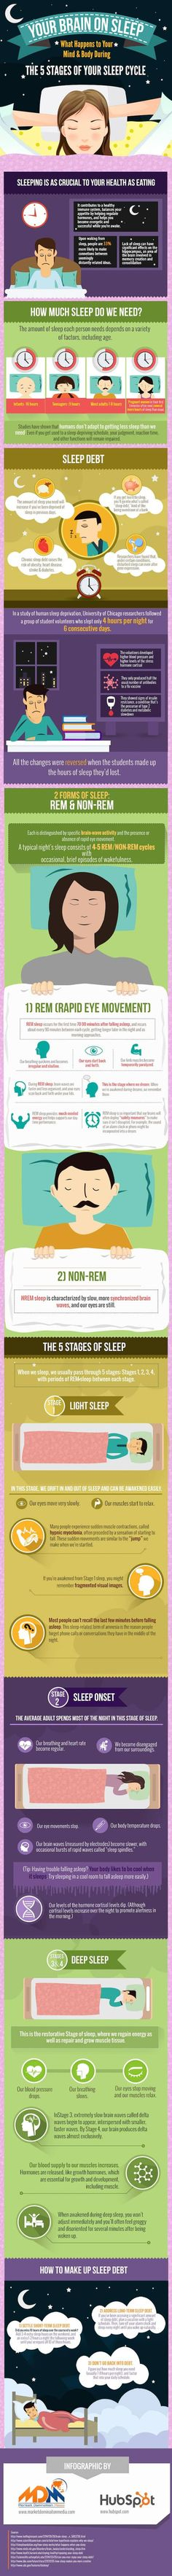 What happens to your brain during the 5 stages of your sleep cycle